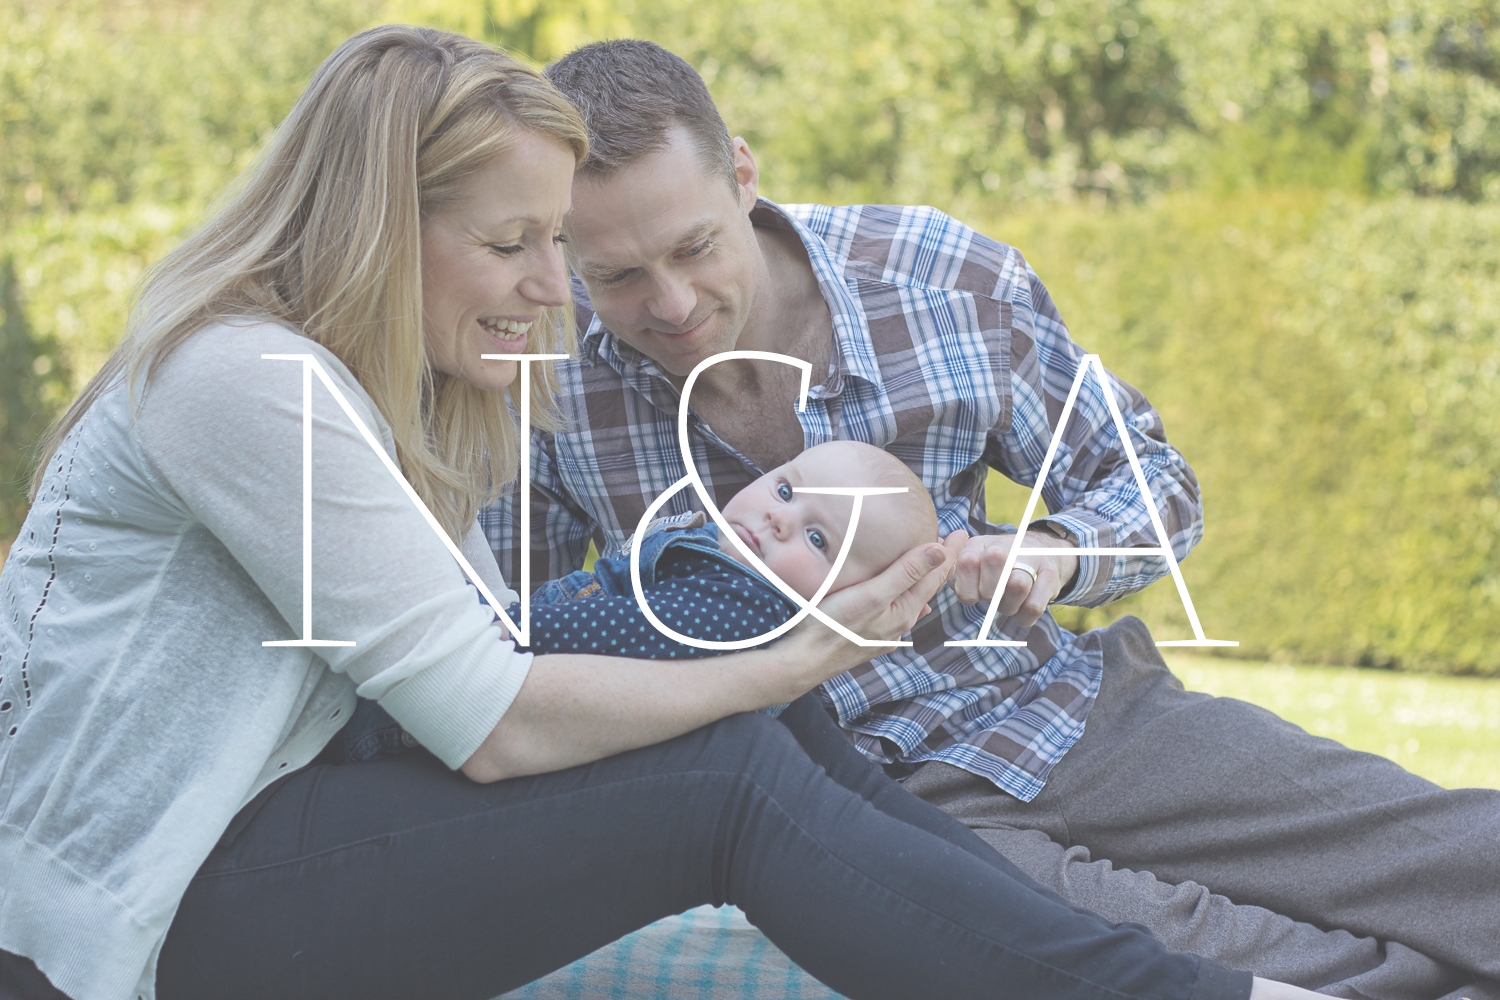 Family Photography in Dunorlan Park, Tunbridge Wells